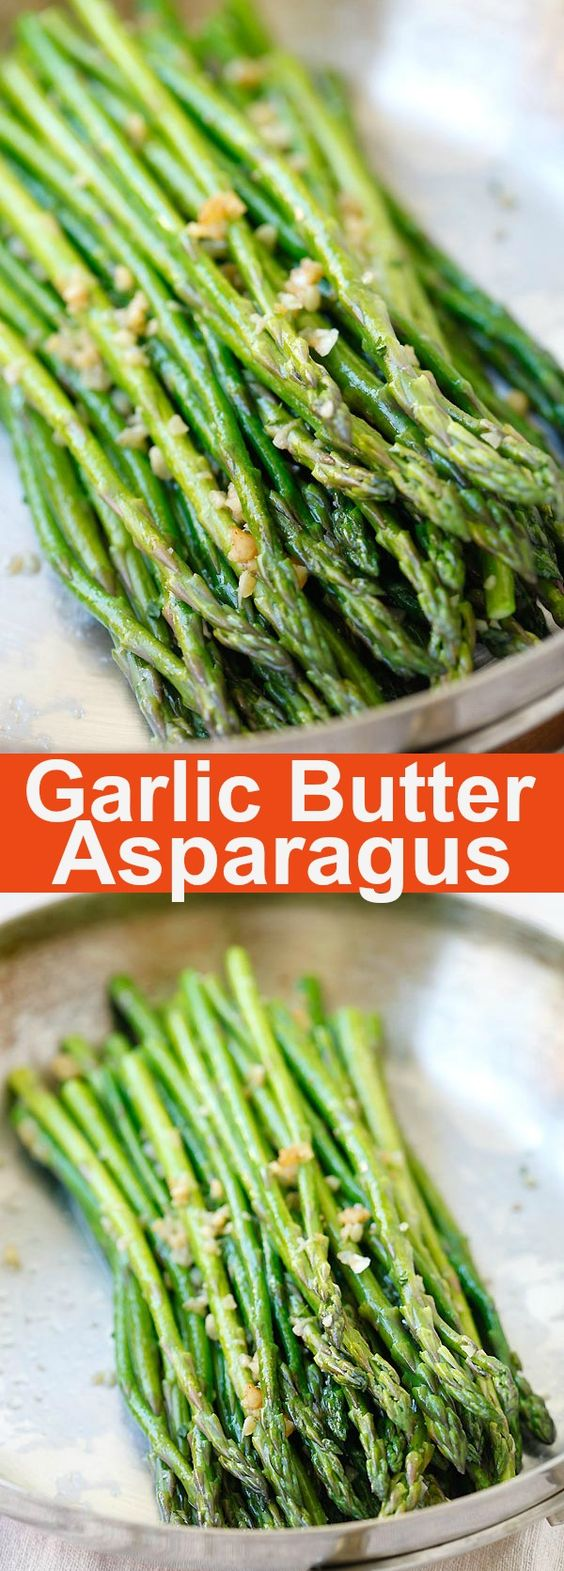 Garlic Butter Sauteed Asparagus #garlic #butter #sauteed #asparagus #veganrecipes #vegetarianrecipes #vegetablerecipes